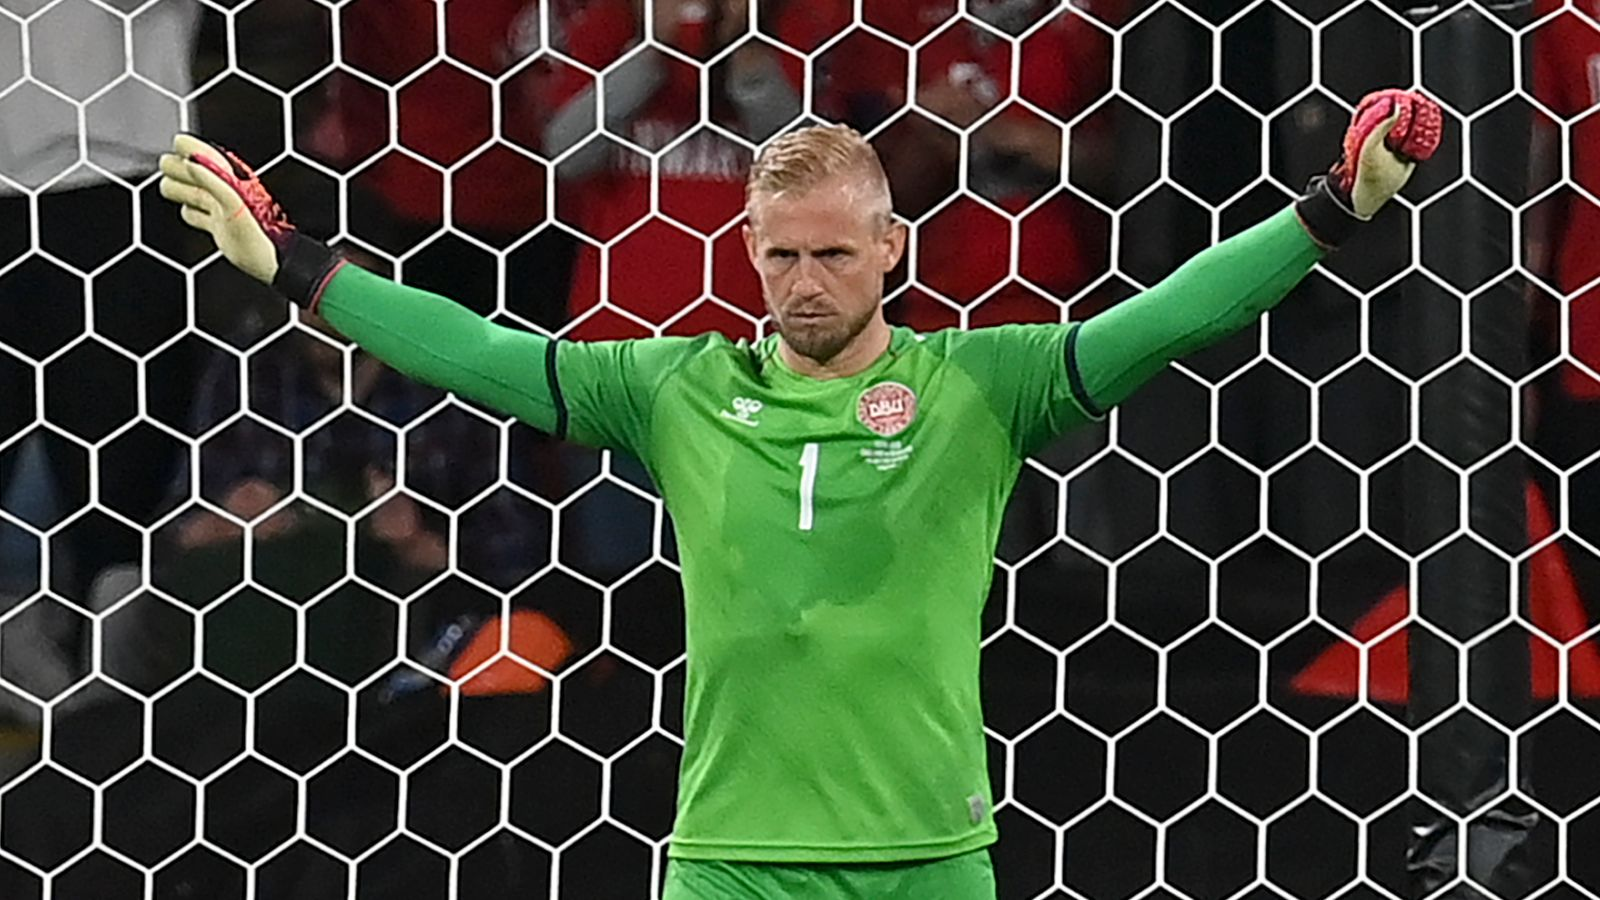 Euro 2020: England fined £25,630 after laser pointer shone at Denmark keeper during semi-final